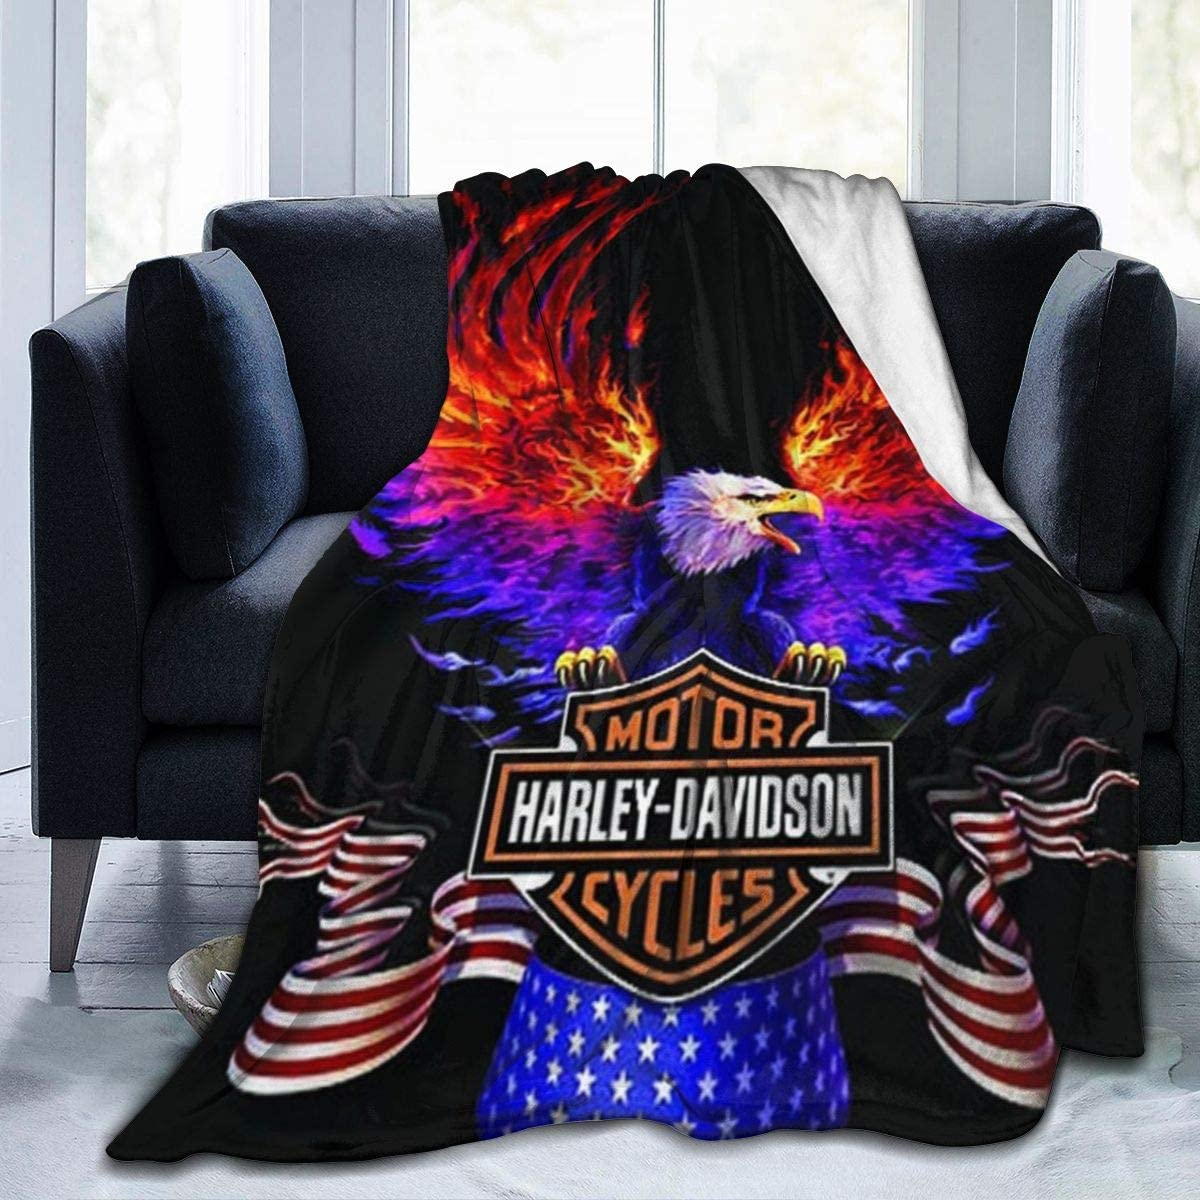 HAR-Ley David-Son Ultra-Soft Micro Fleece Blanket